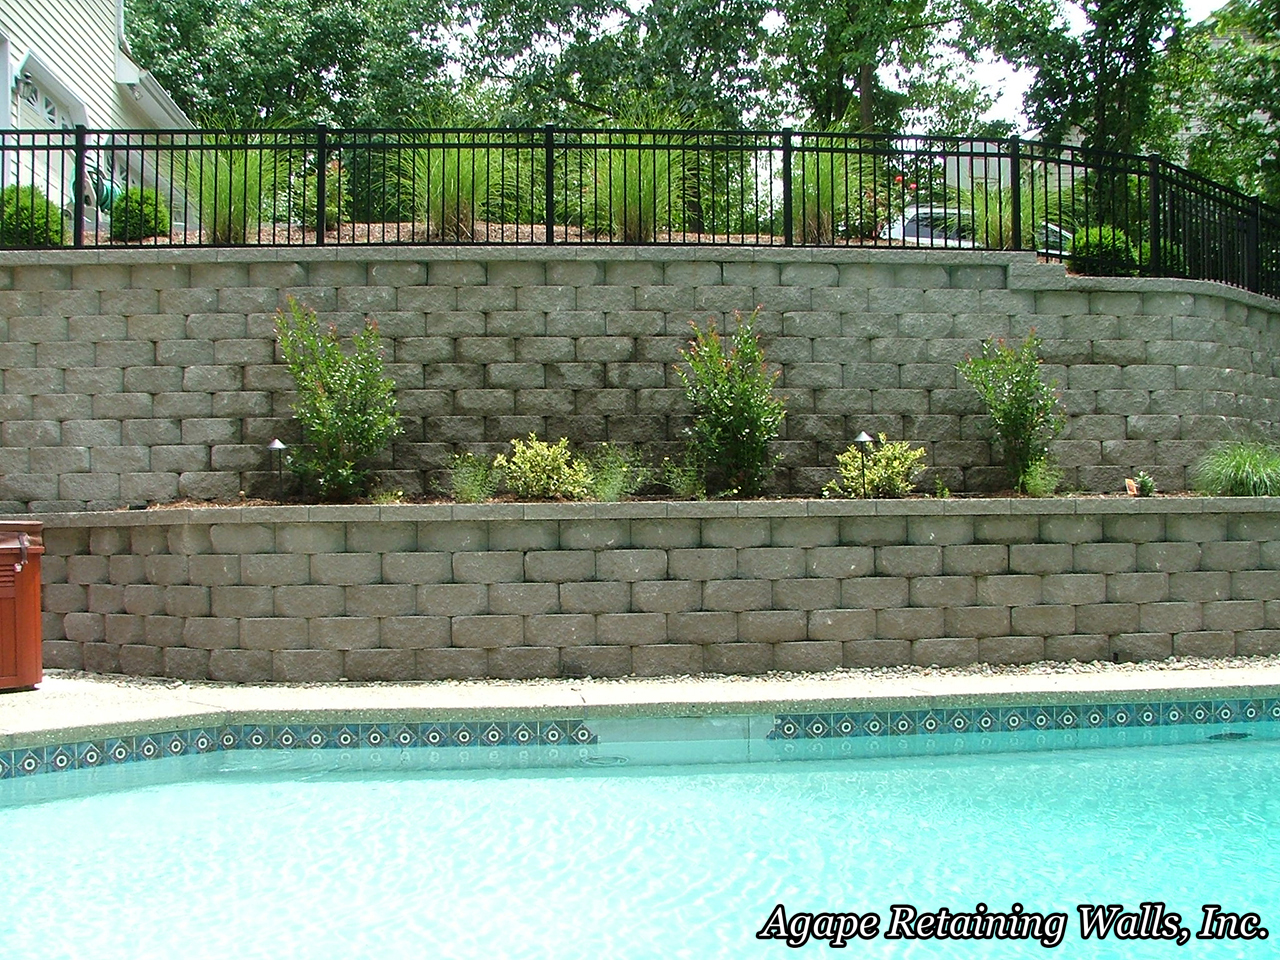 the terraced retaining wall design allowed the landscape contractor to come in after us and break up the look of this large retaining wall with some great